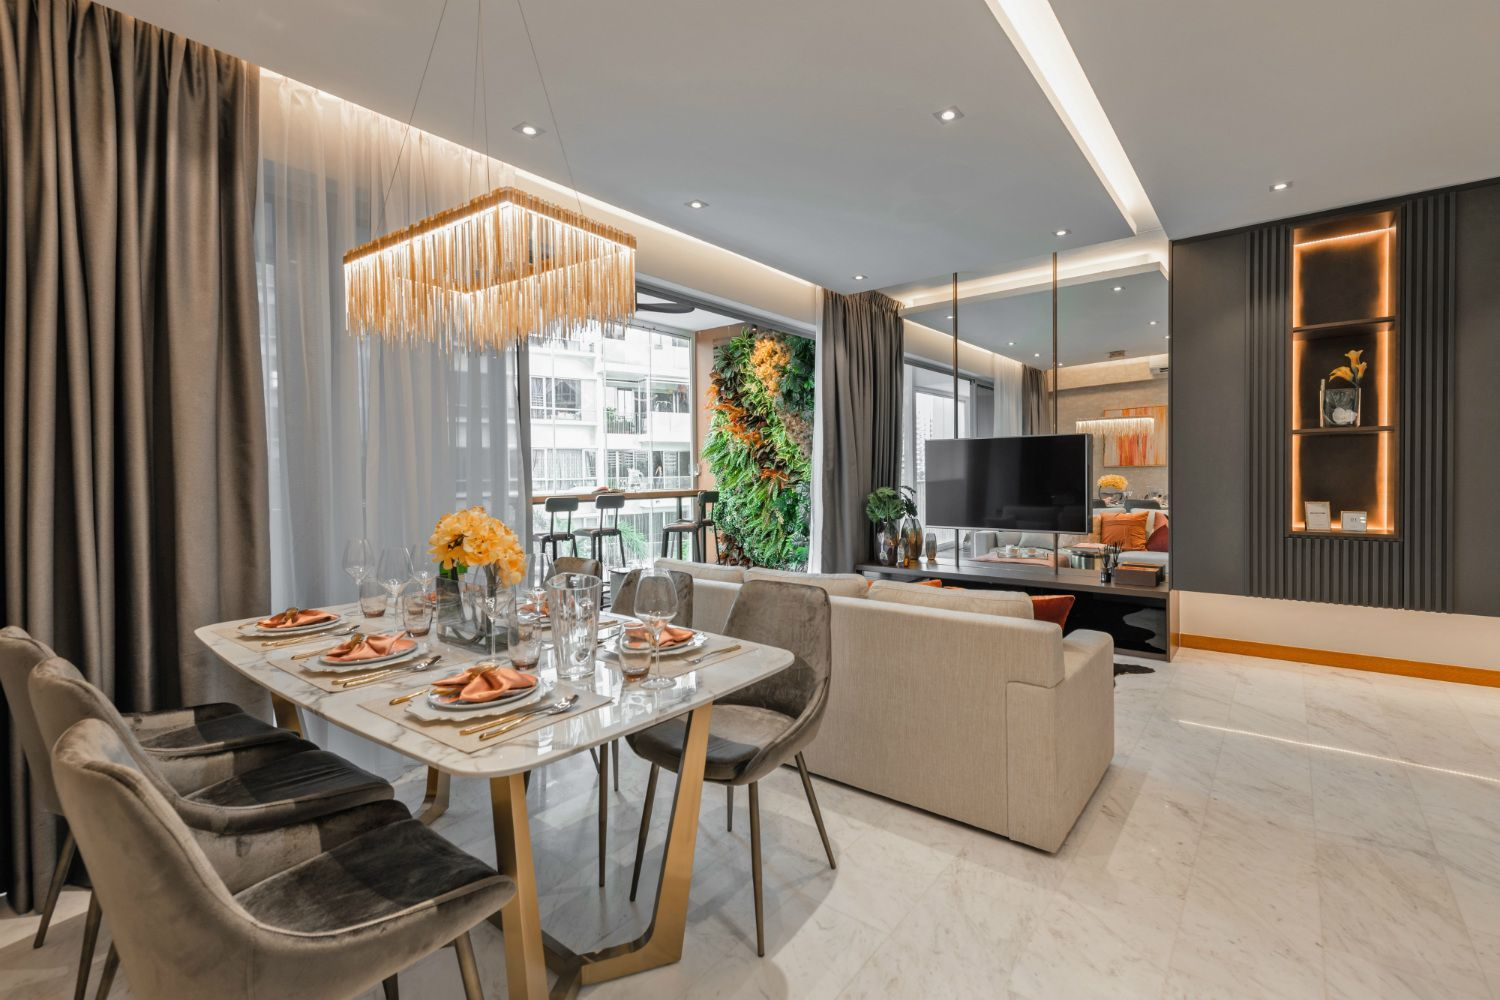 squarerooms-mr-shopper-studio-dining-room-glamour-luxury-lighting-chandelier